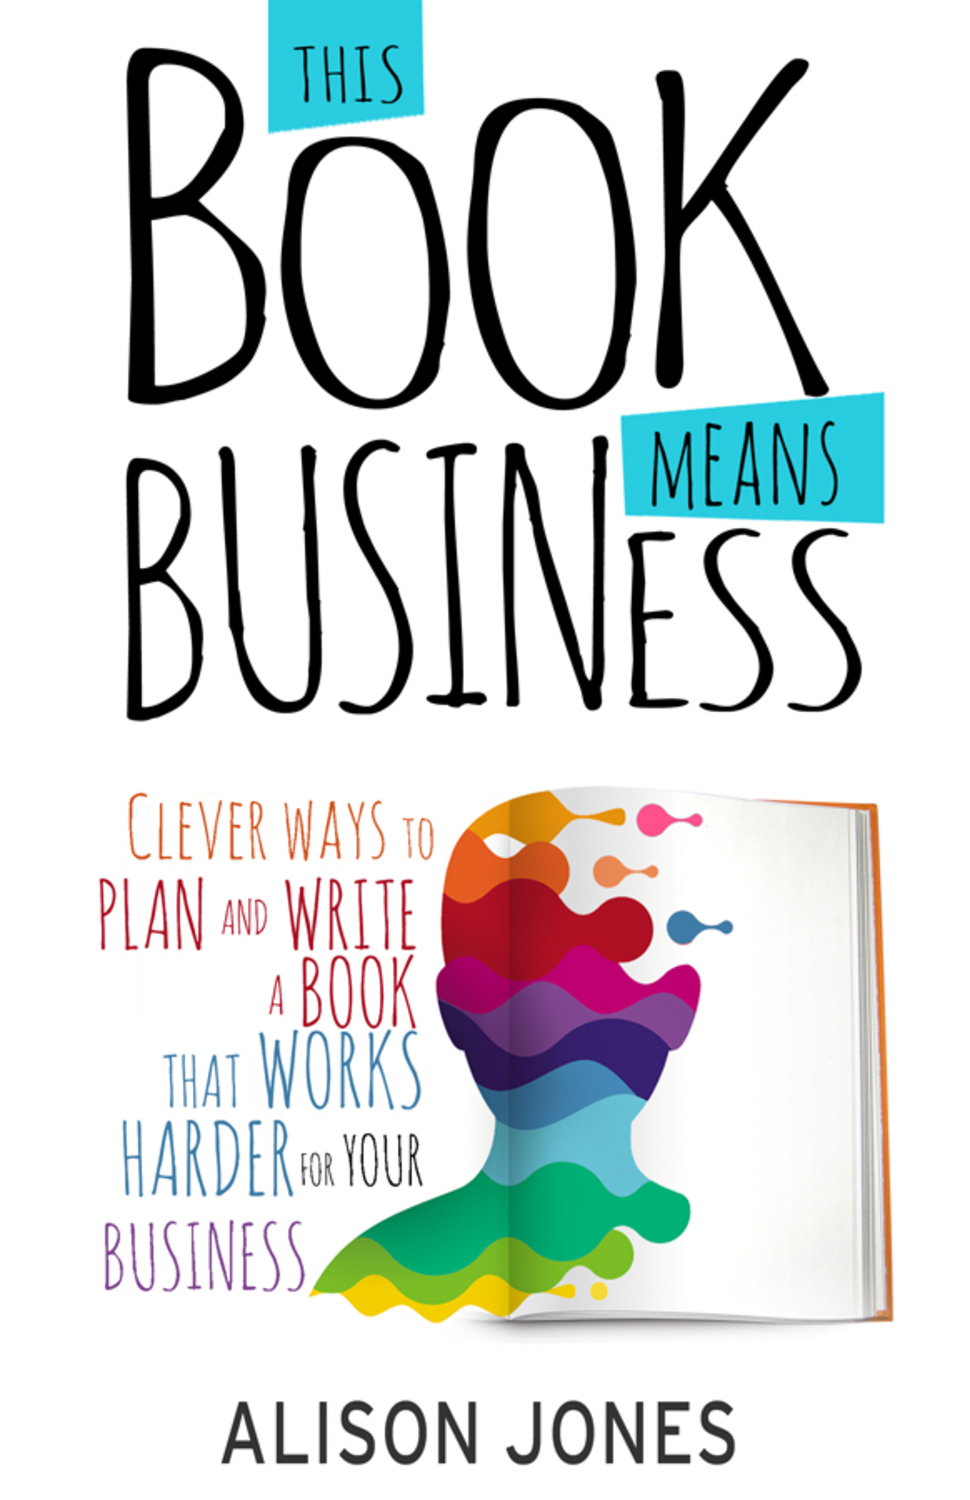 This Book Means Business: Clever ways to plan and write a book that works harder for your business